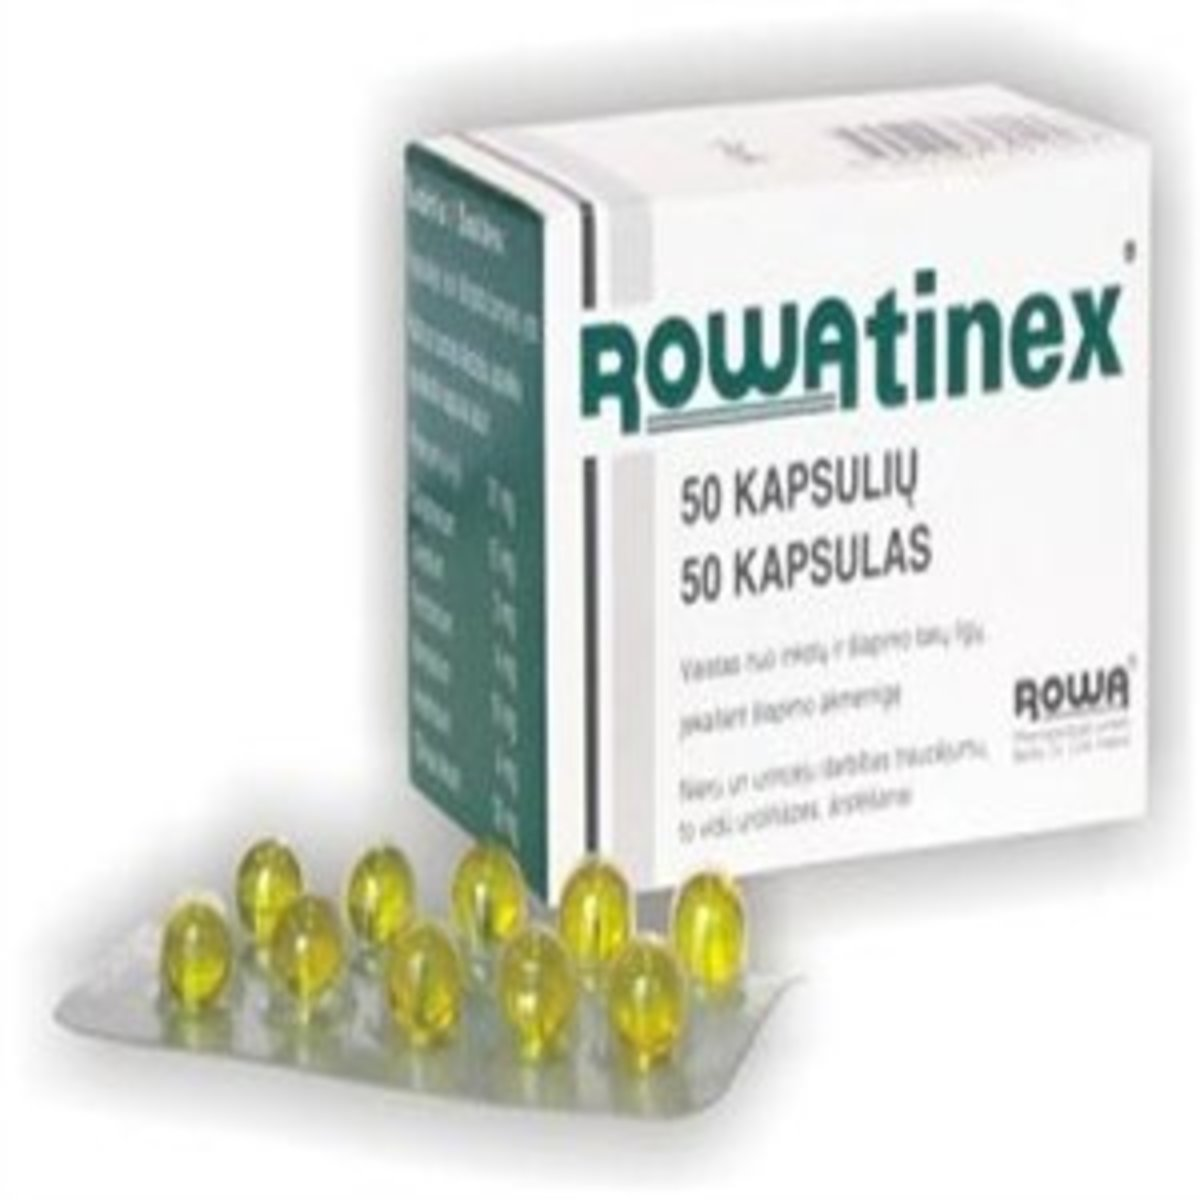 Acalka and Rowatinex Medicine for Treatment of Kidney ...